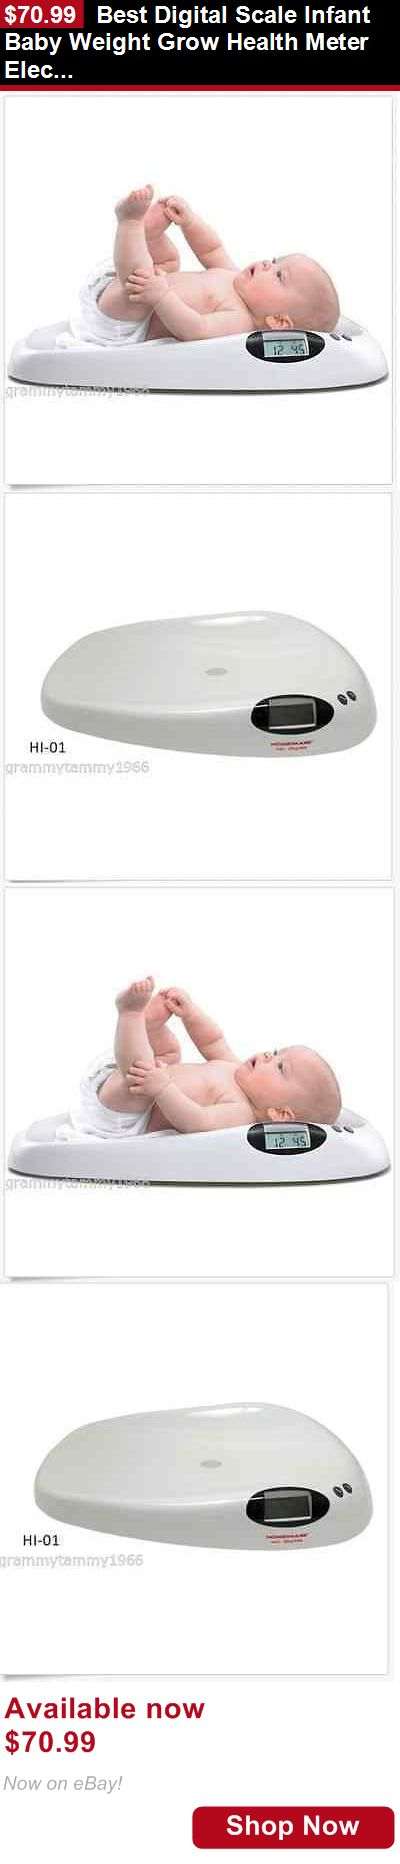 Baby Scales: Best Digital Scale Infant Baby Weight Grow Health Meter Electronic Auto Off New BUY IT NOW ONLY: $70.99